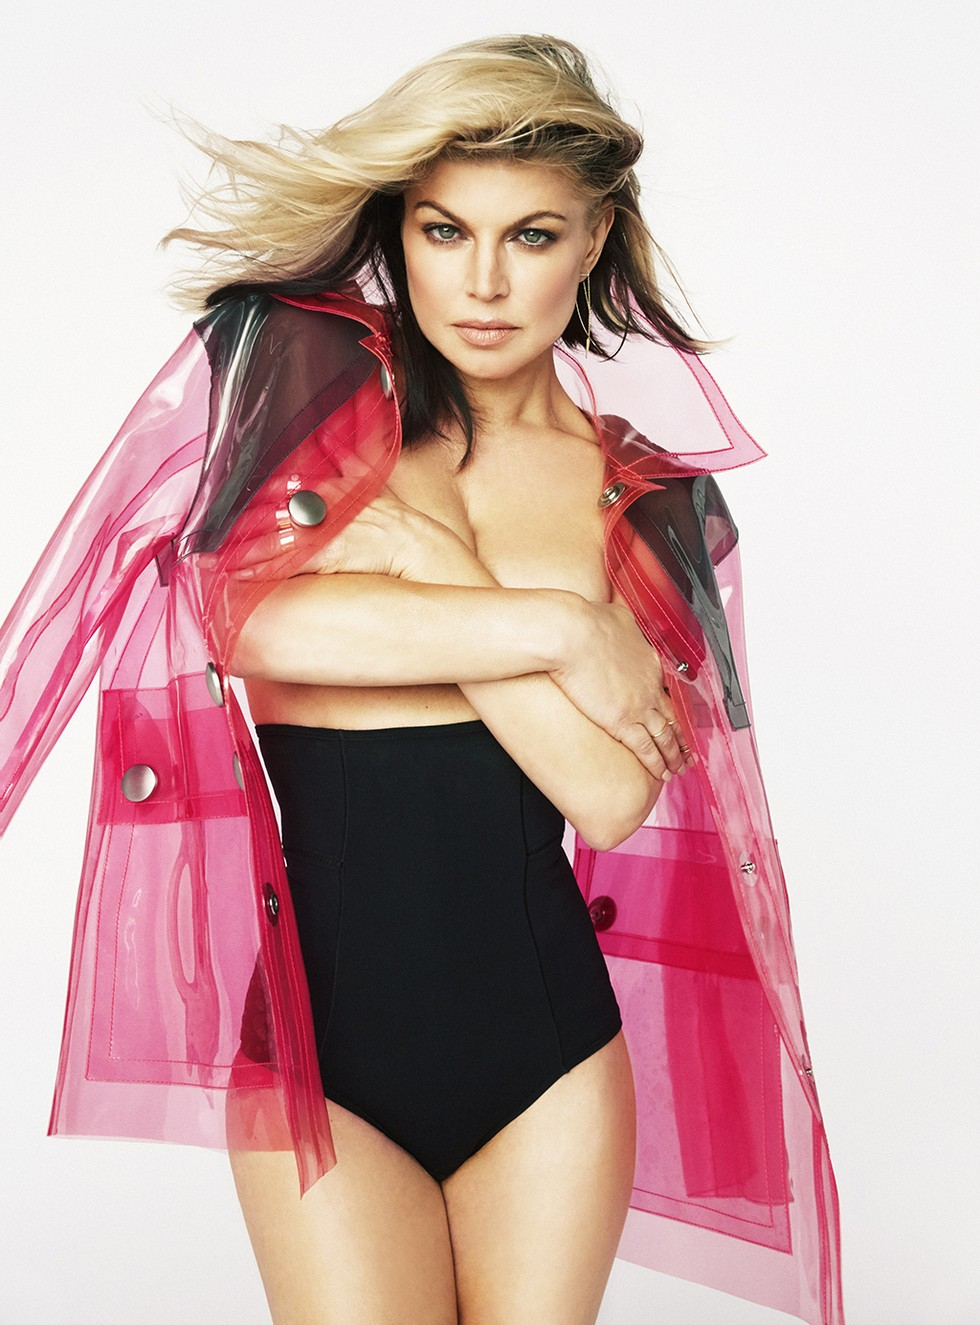 Fergie Is Back and Better Than Ever